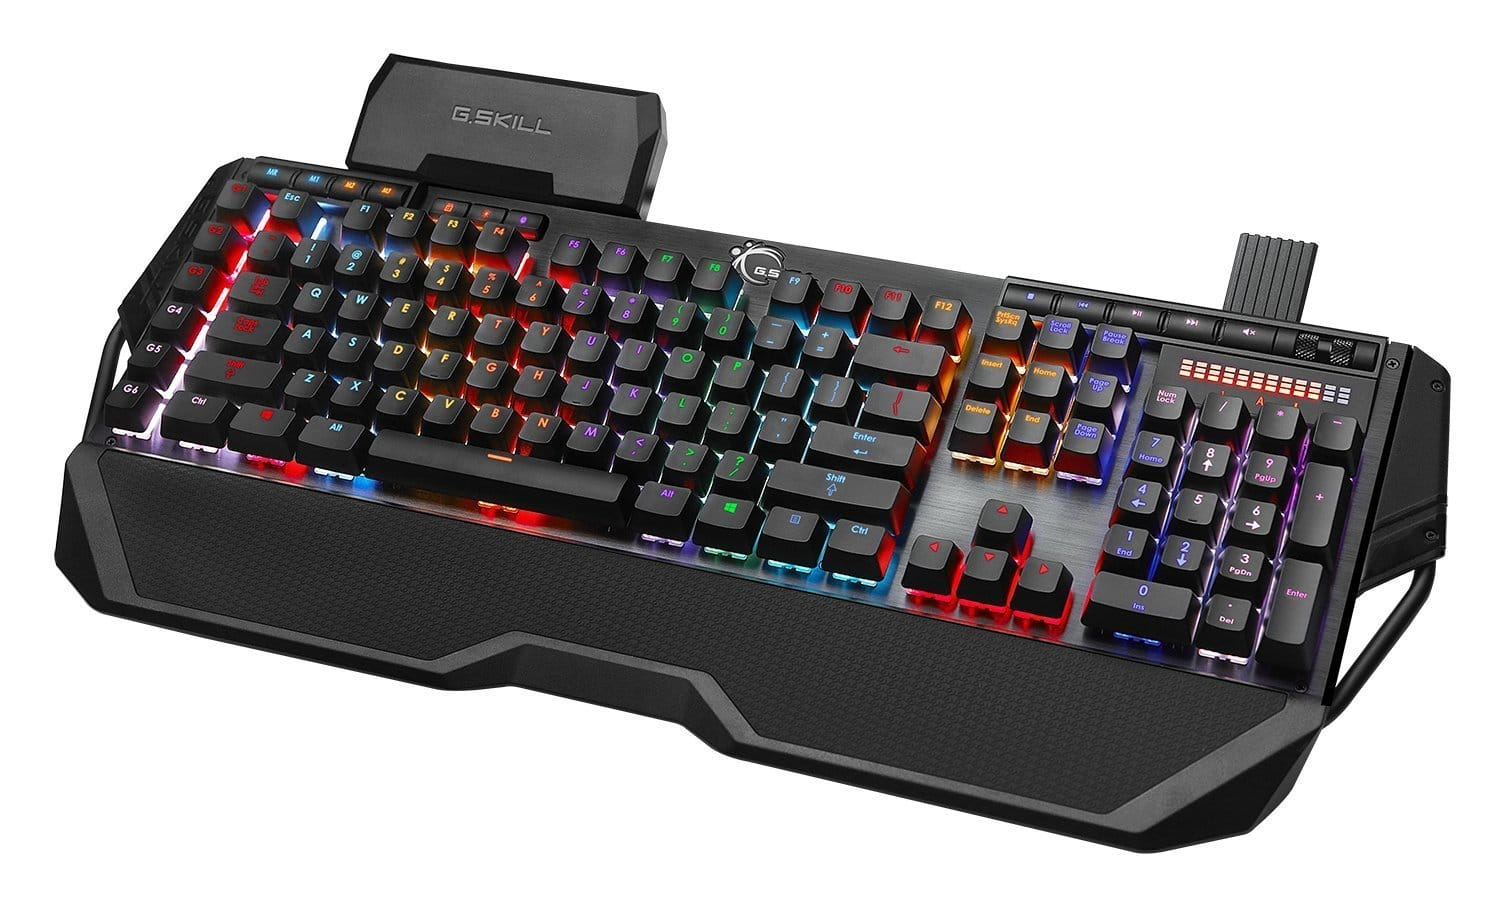 G.SKILL RIPJAWS KM780 RGB On-the-Fly Macro Mechanical Gaming Keyboard, Cherry MX Brown for $104.99 + Free Shipping